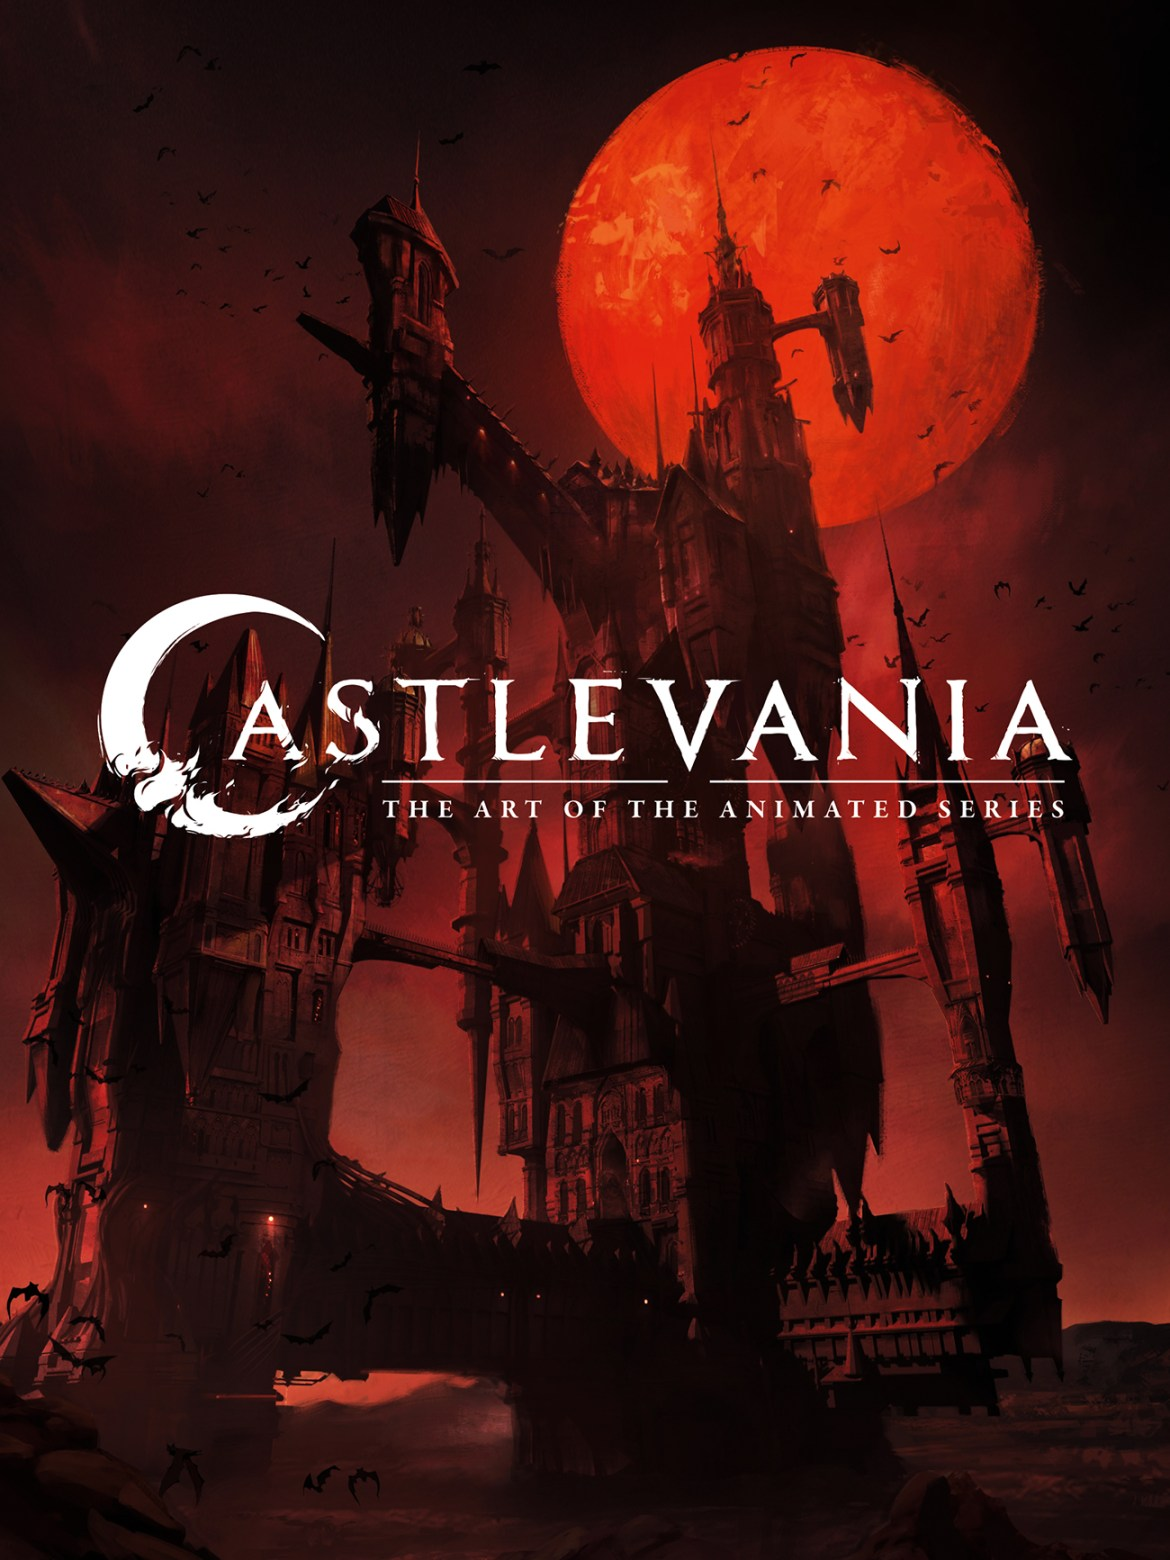 castlevaniacov CASTLEVANIA: THE ART OF THE ANIMATED SERIES to haunt book shelves